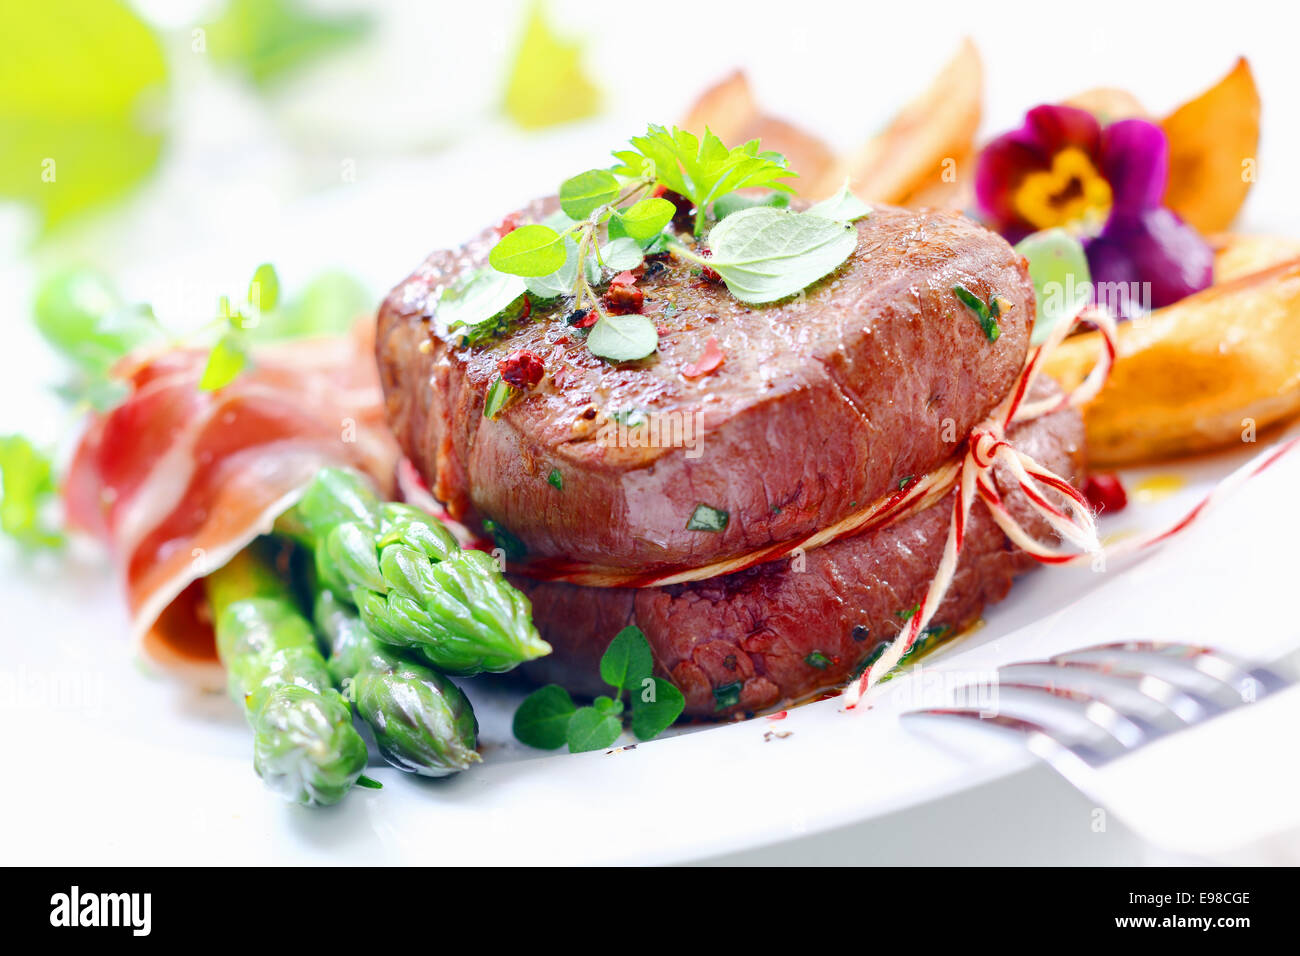 Thick juicy steak with fresh green asparagus spears wrapped in thinly sliced ham or bacon served garnished with - Stock Image